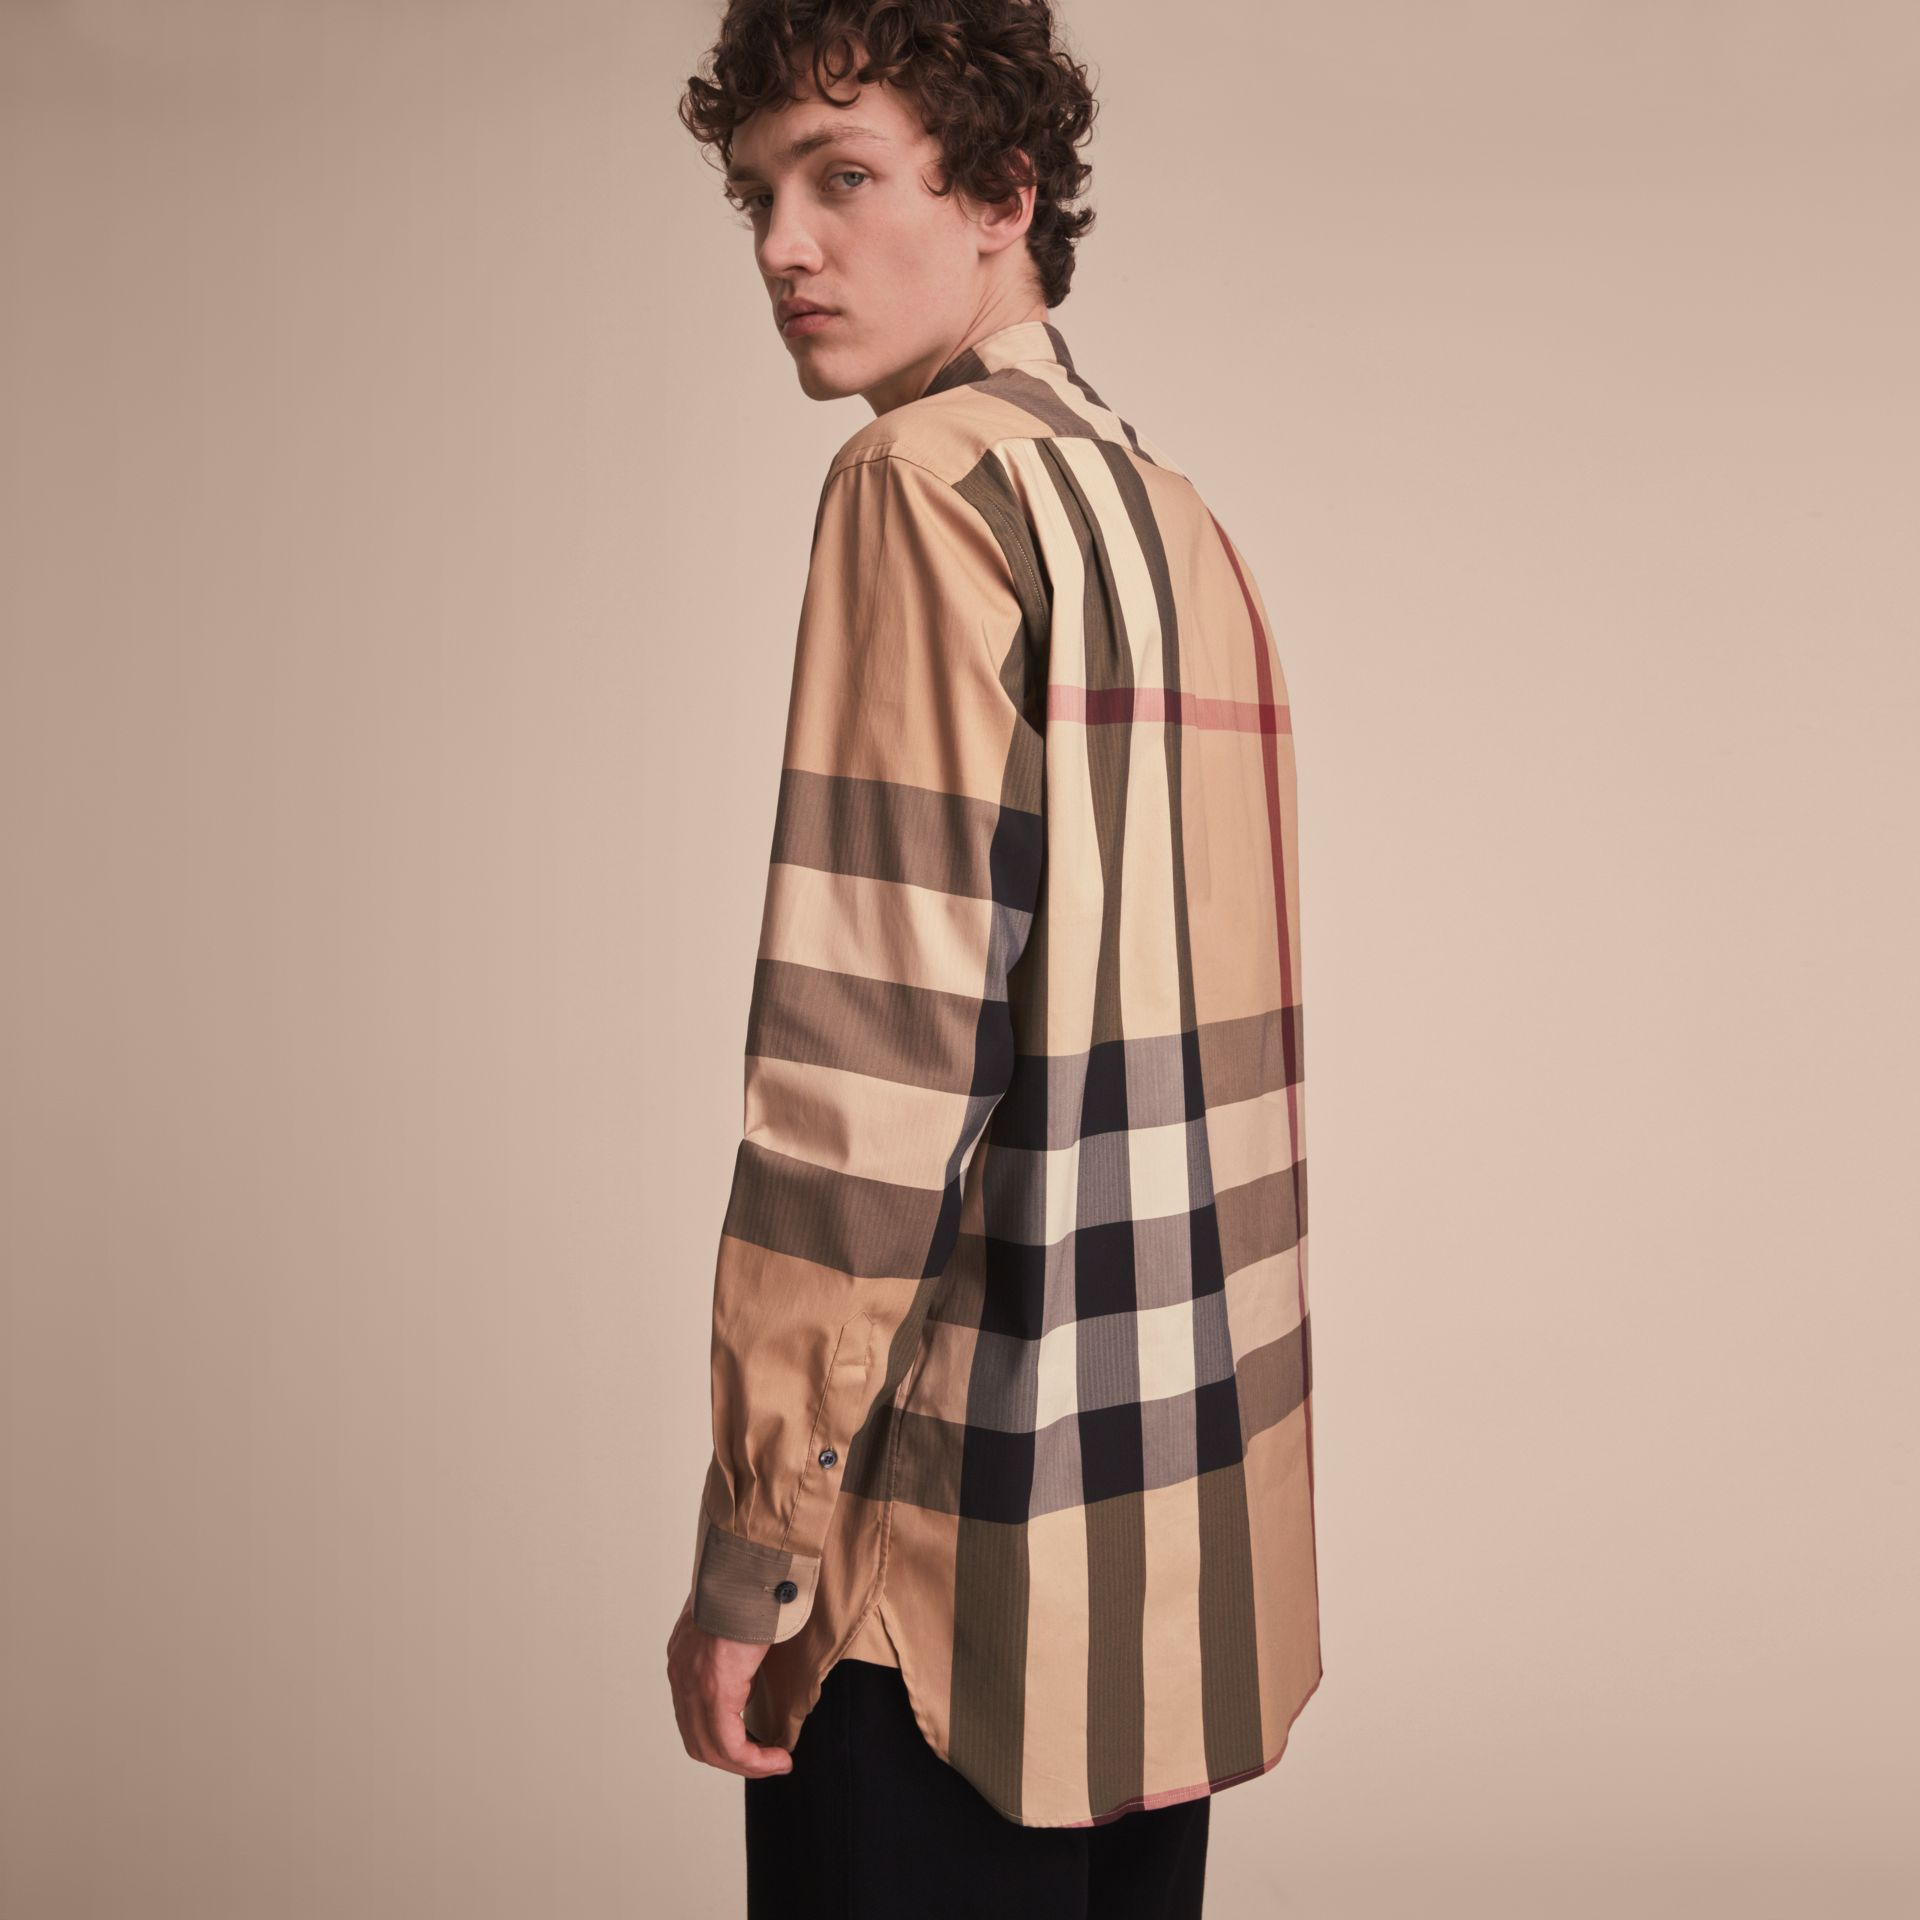 Grandad Collar Check Cotton Blend Shirt in Camel - Men | Burberry - gallery image 3